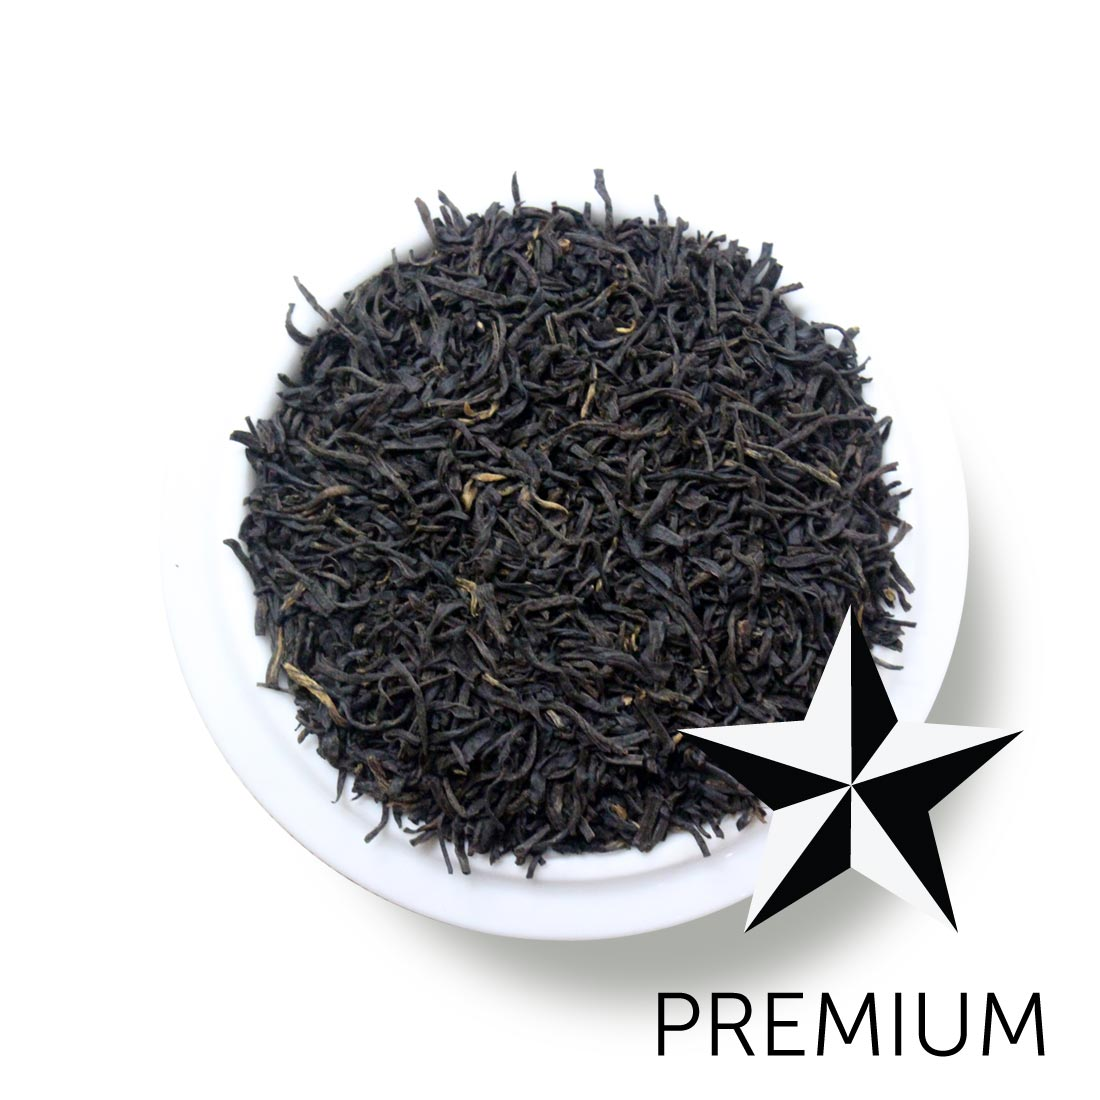 Premium Black Tea Smoky Keemun